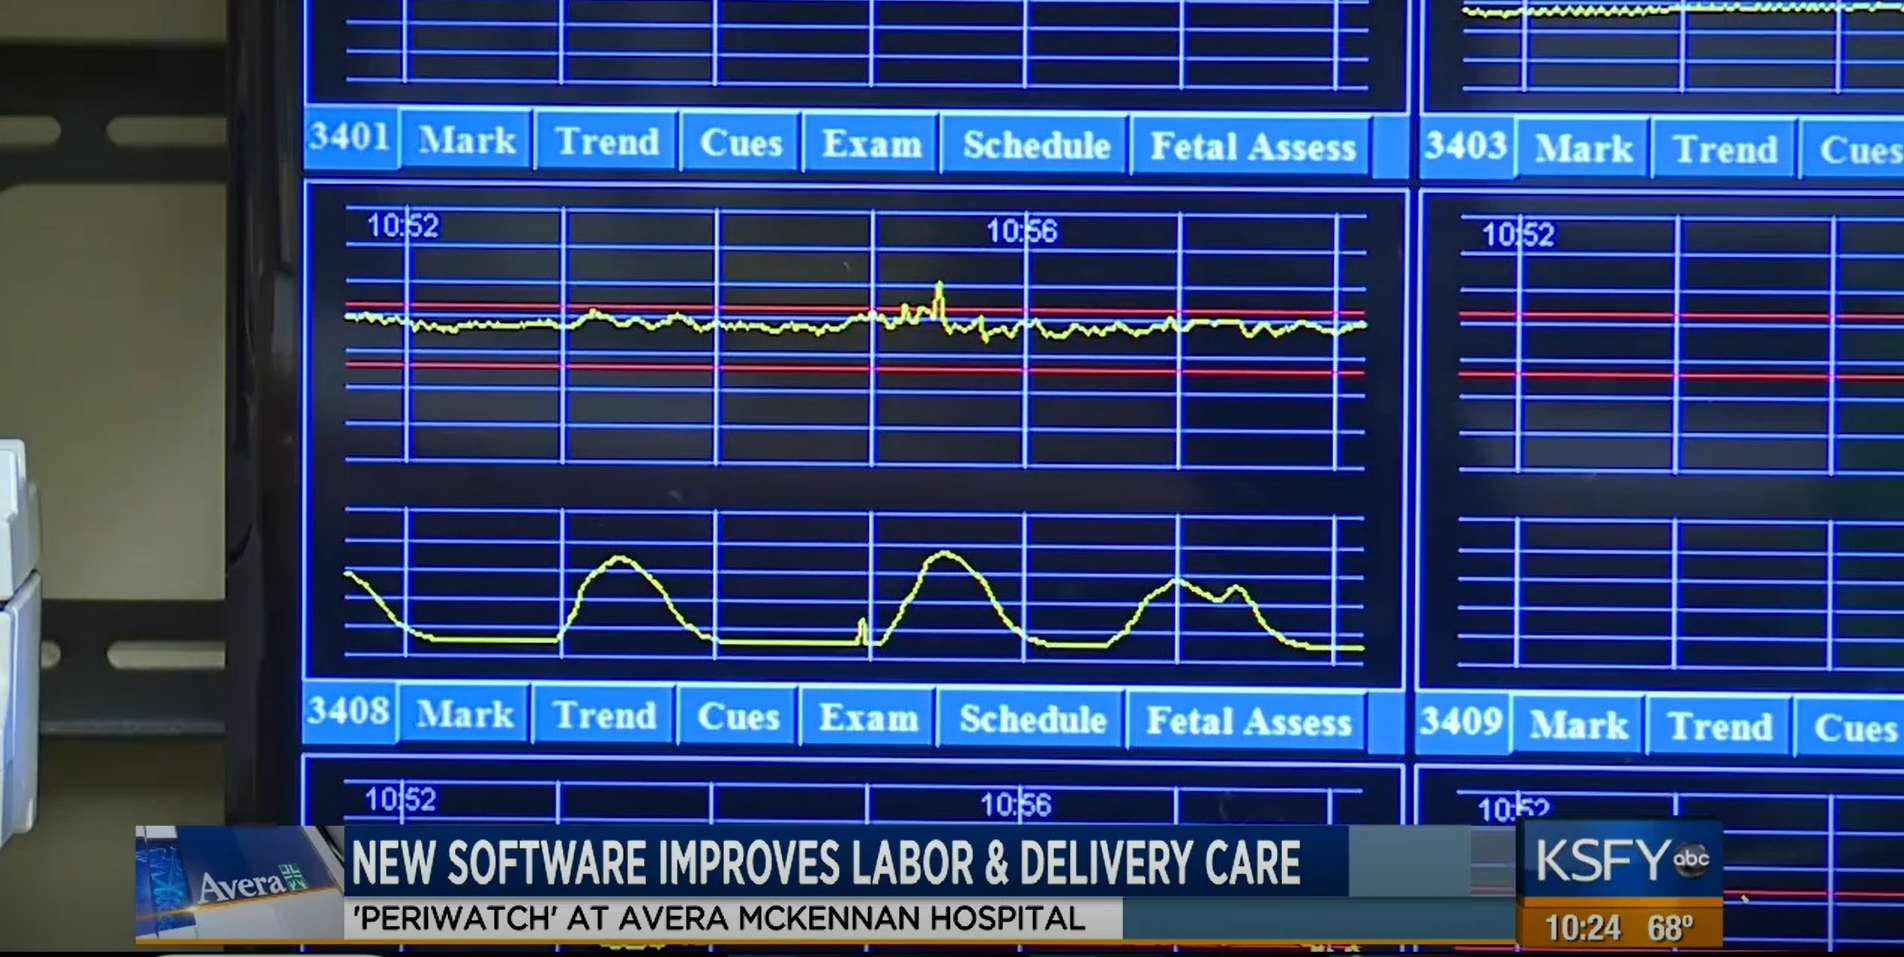 PeriGen improves standard of care for labor and delivery at Avera Health